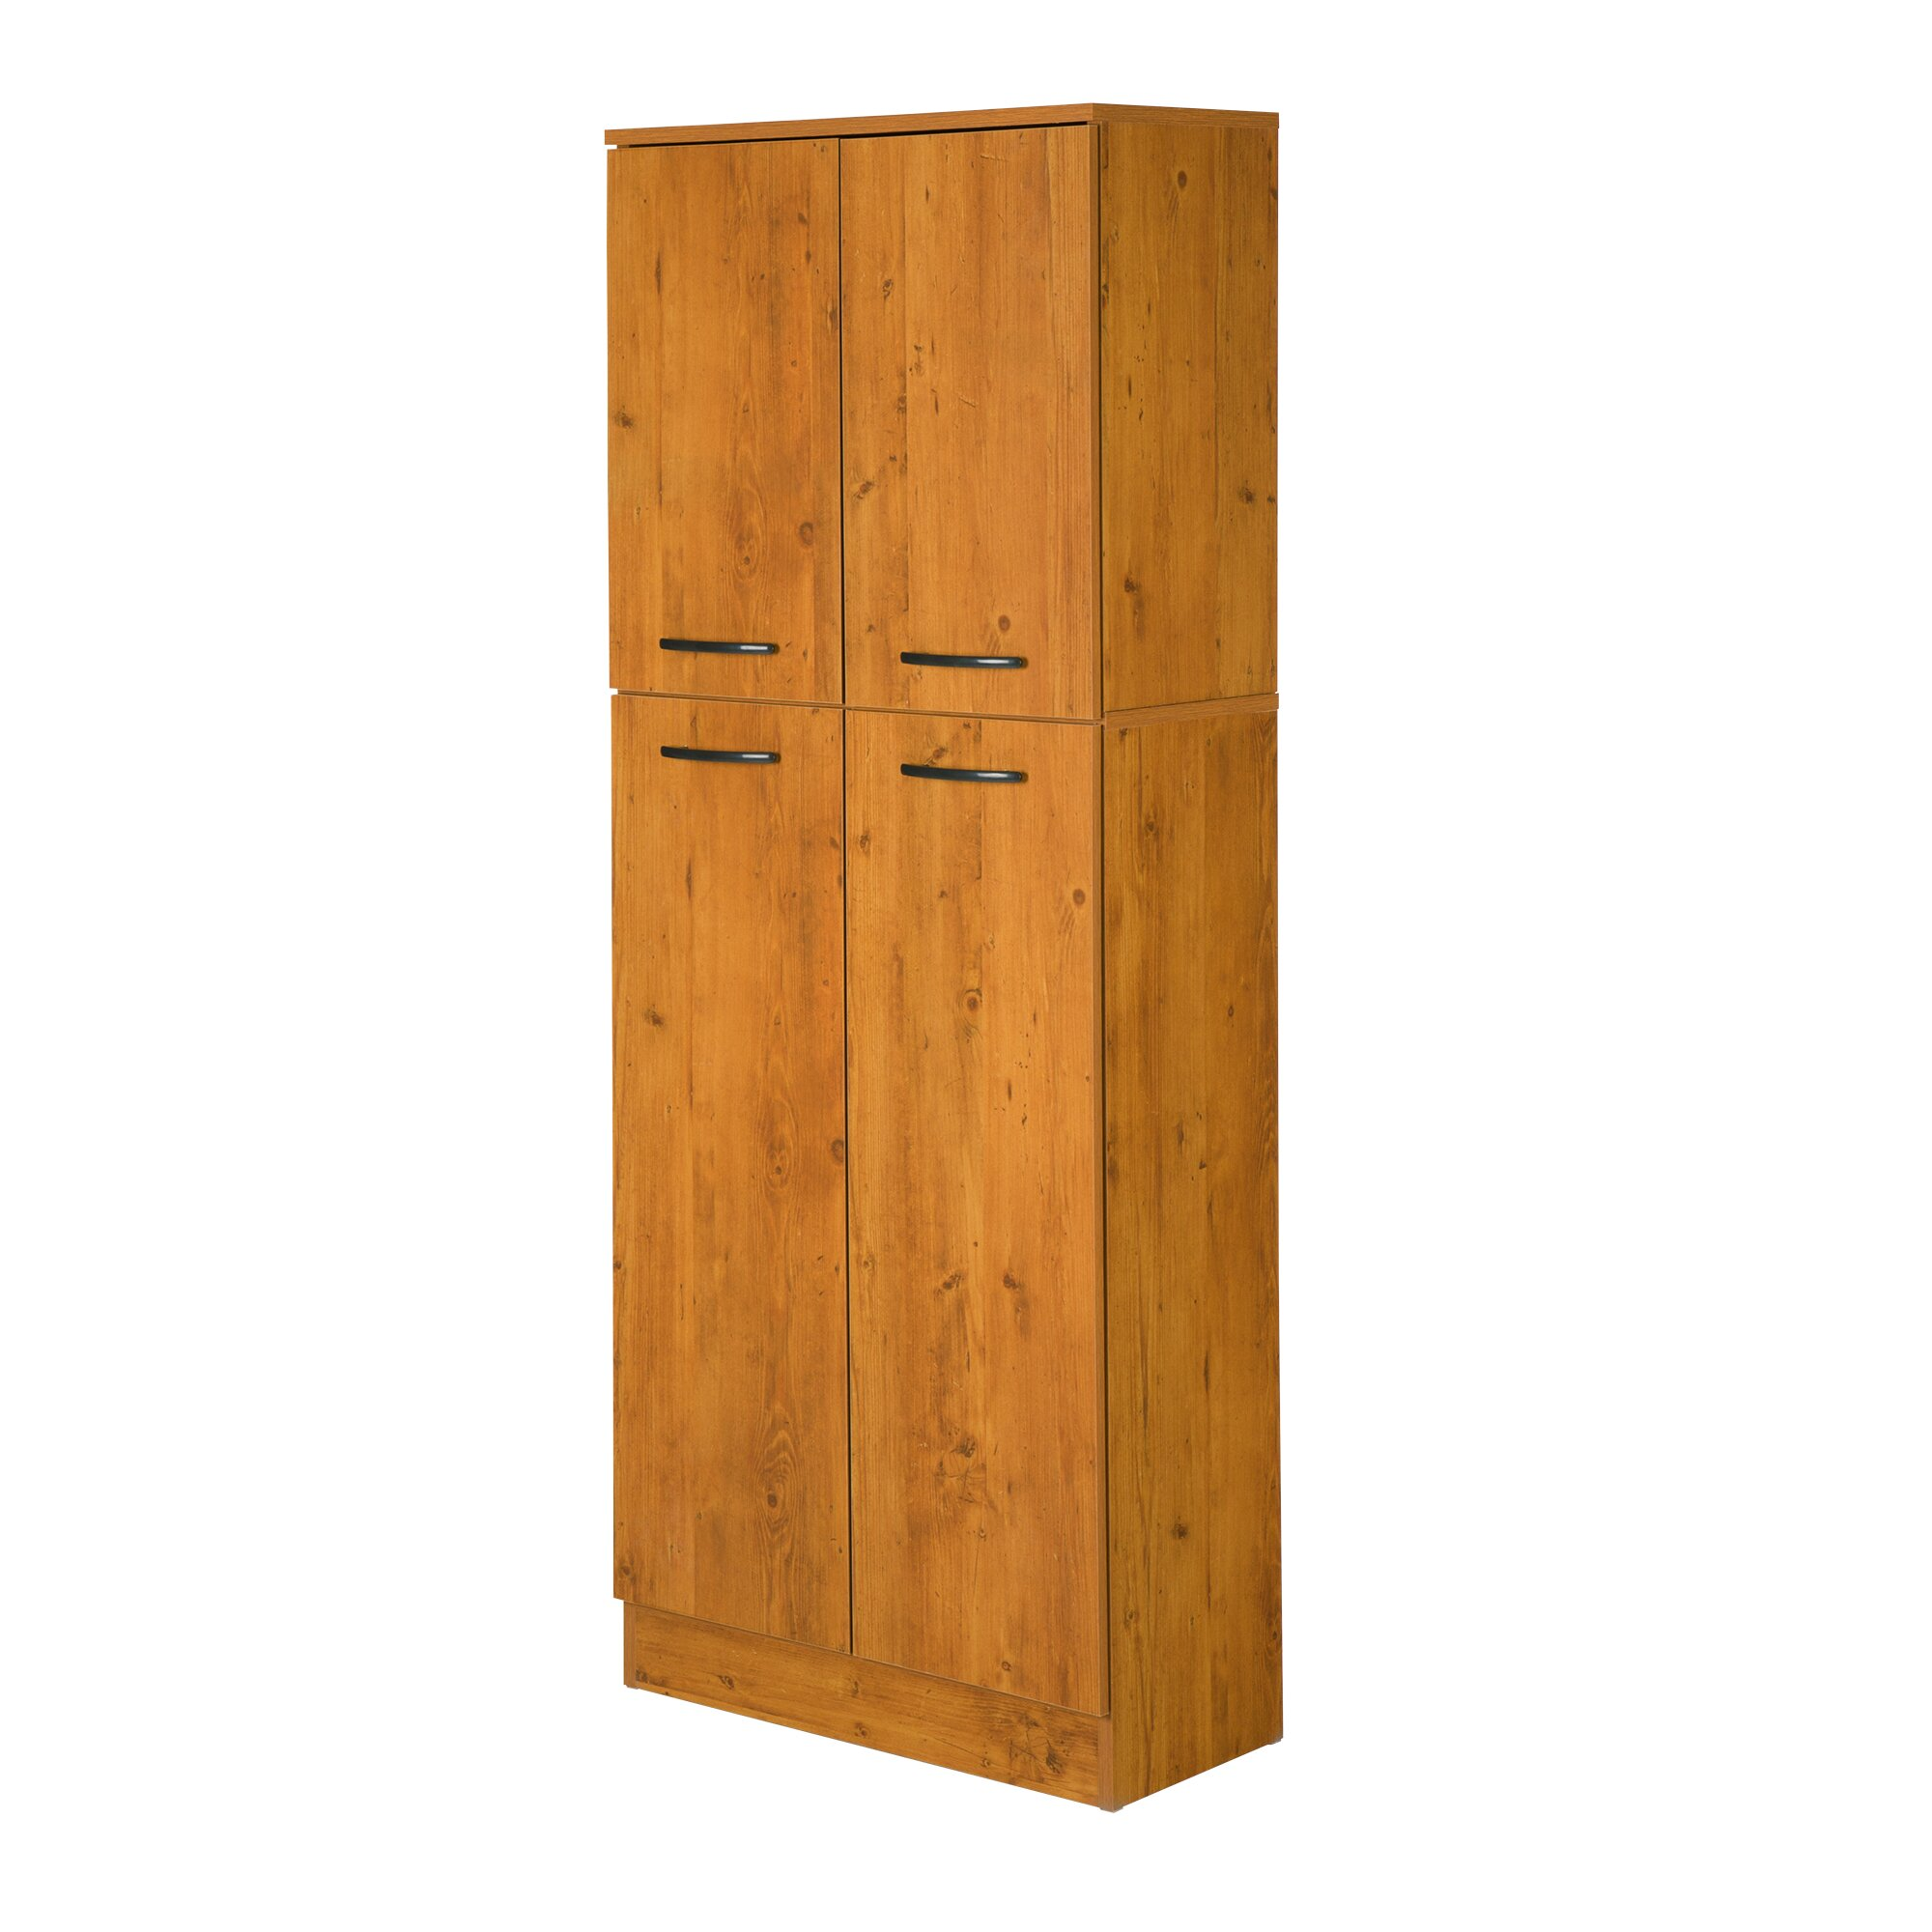 Pantry Cabinet: Food Cabinets Pantry with Food Storage on ...